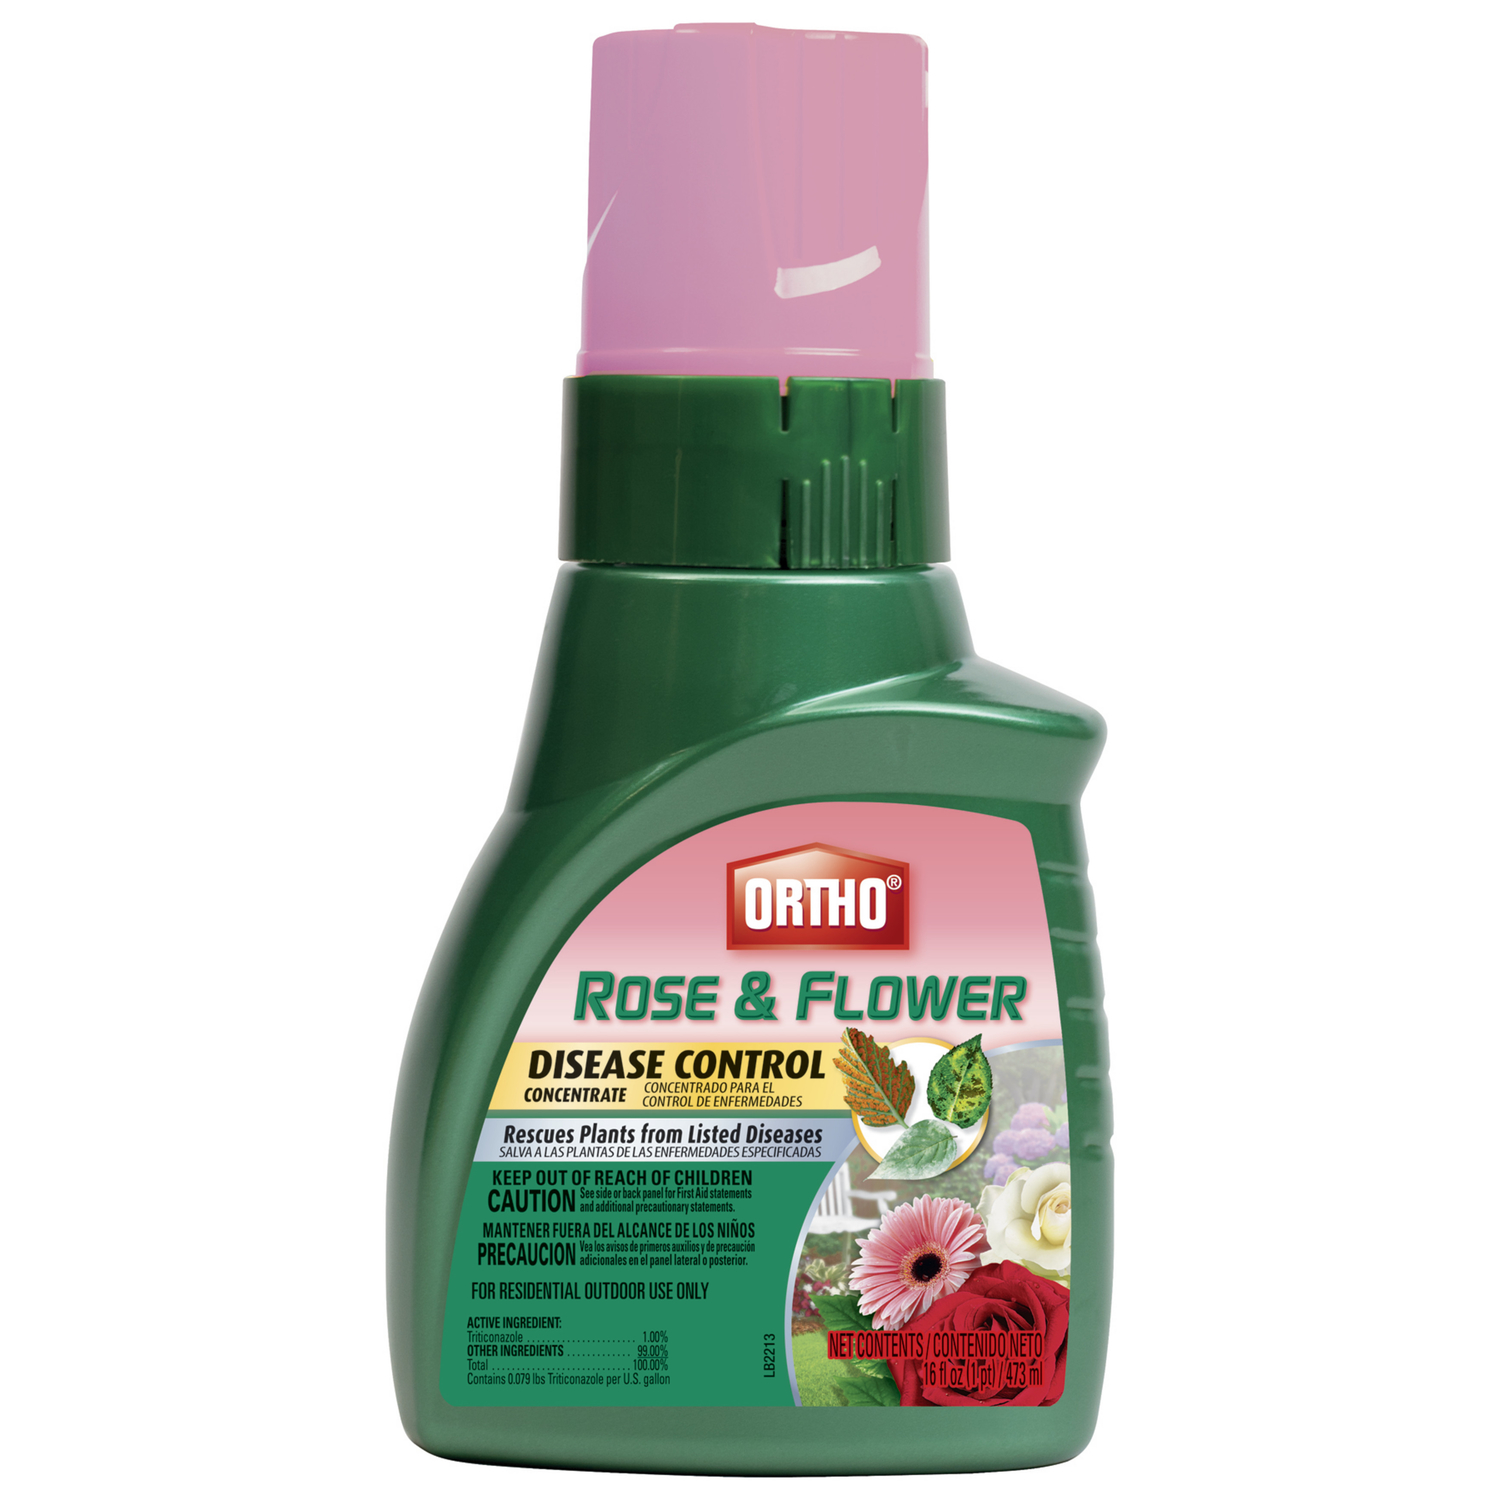 Ortho  Rose & Flower  Concentrated Liquid  Disease Control  16 oz.